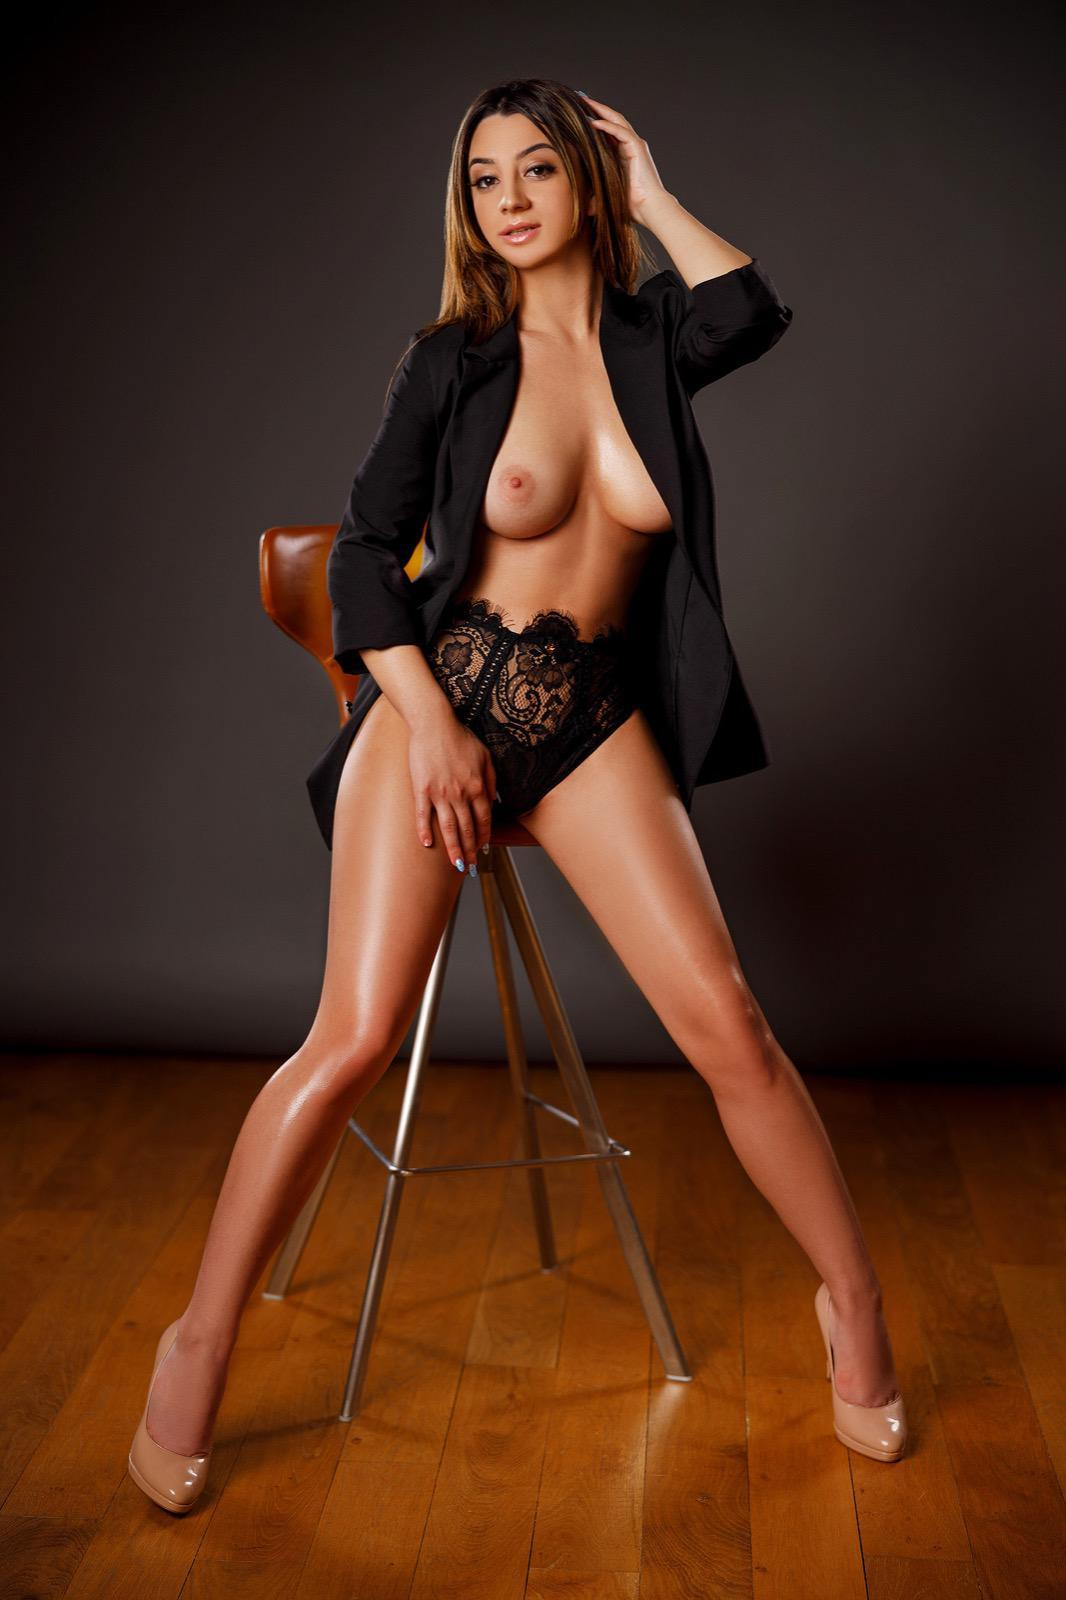 Lesley from Prostate Massage In London